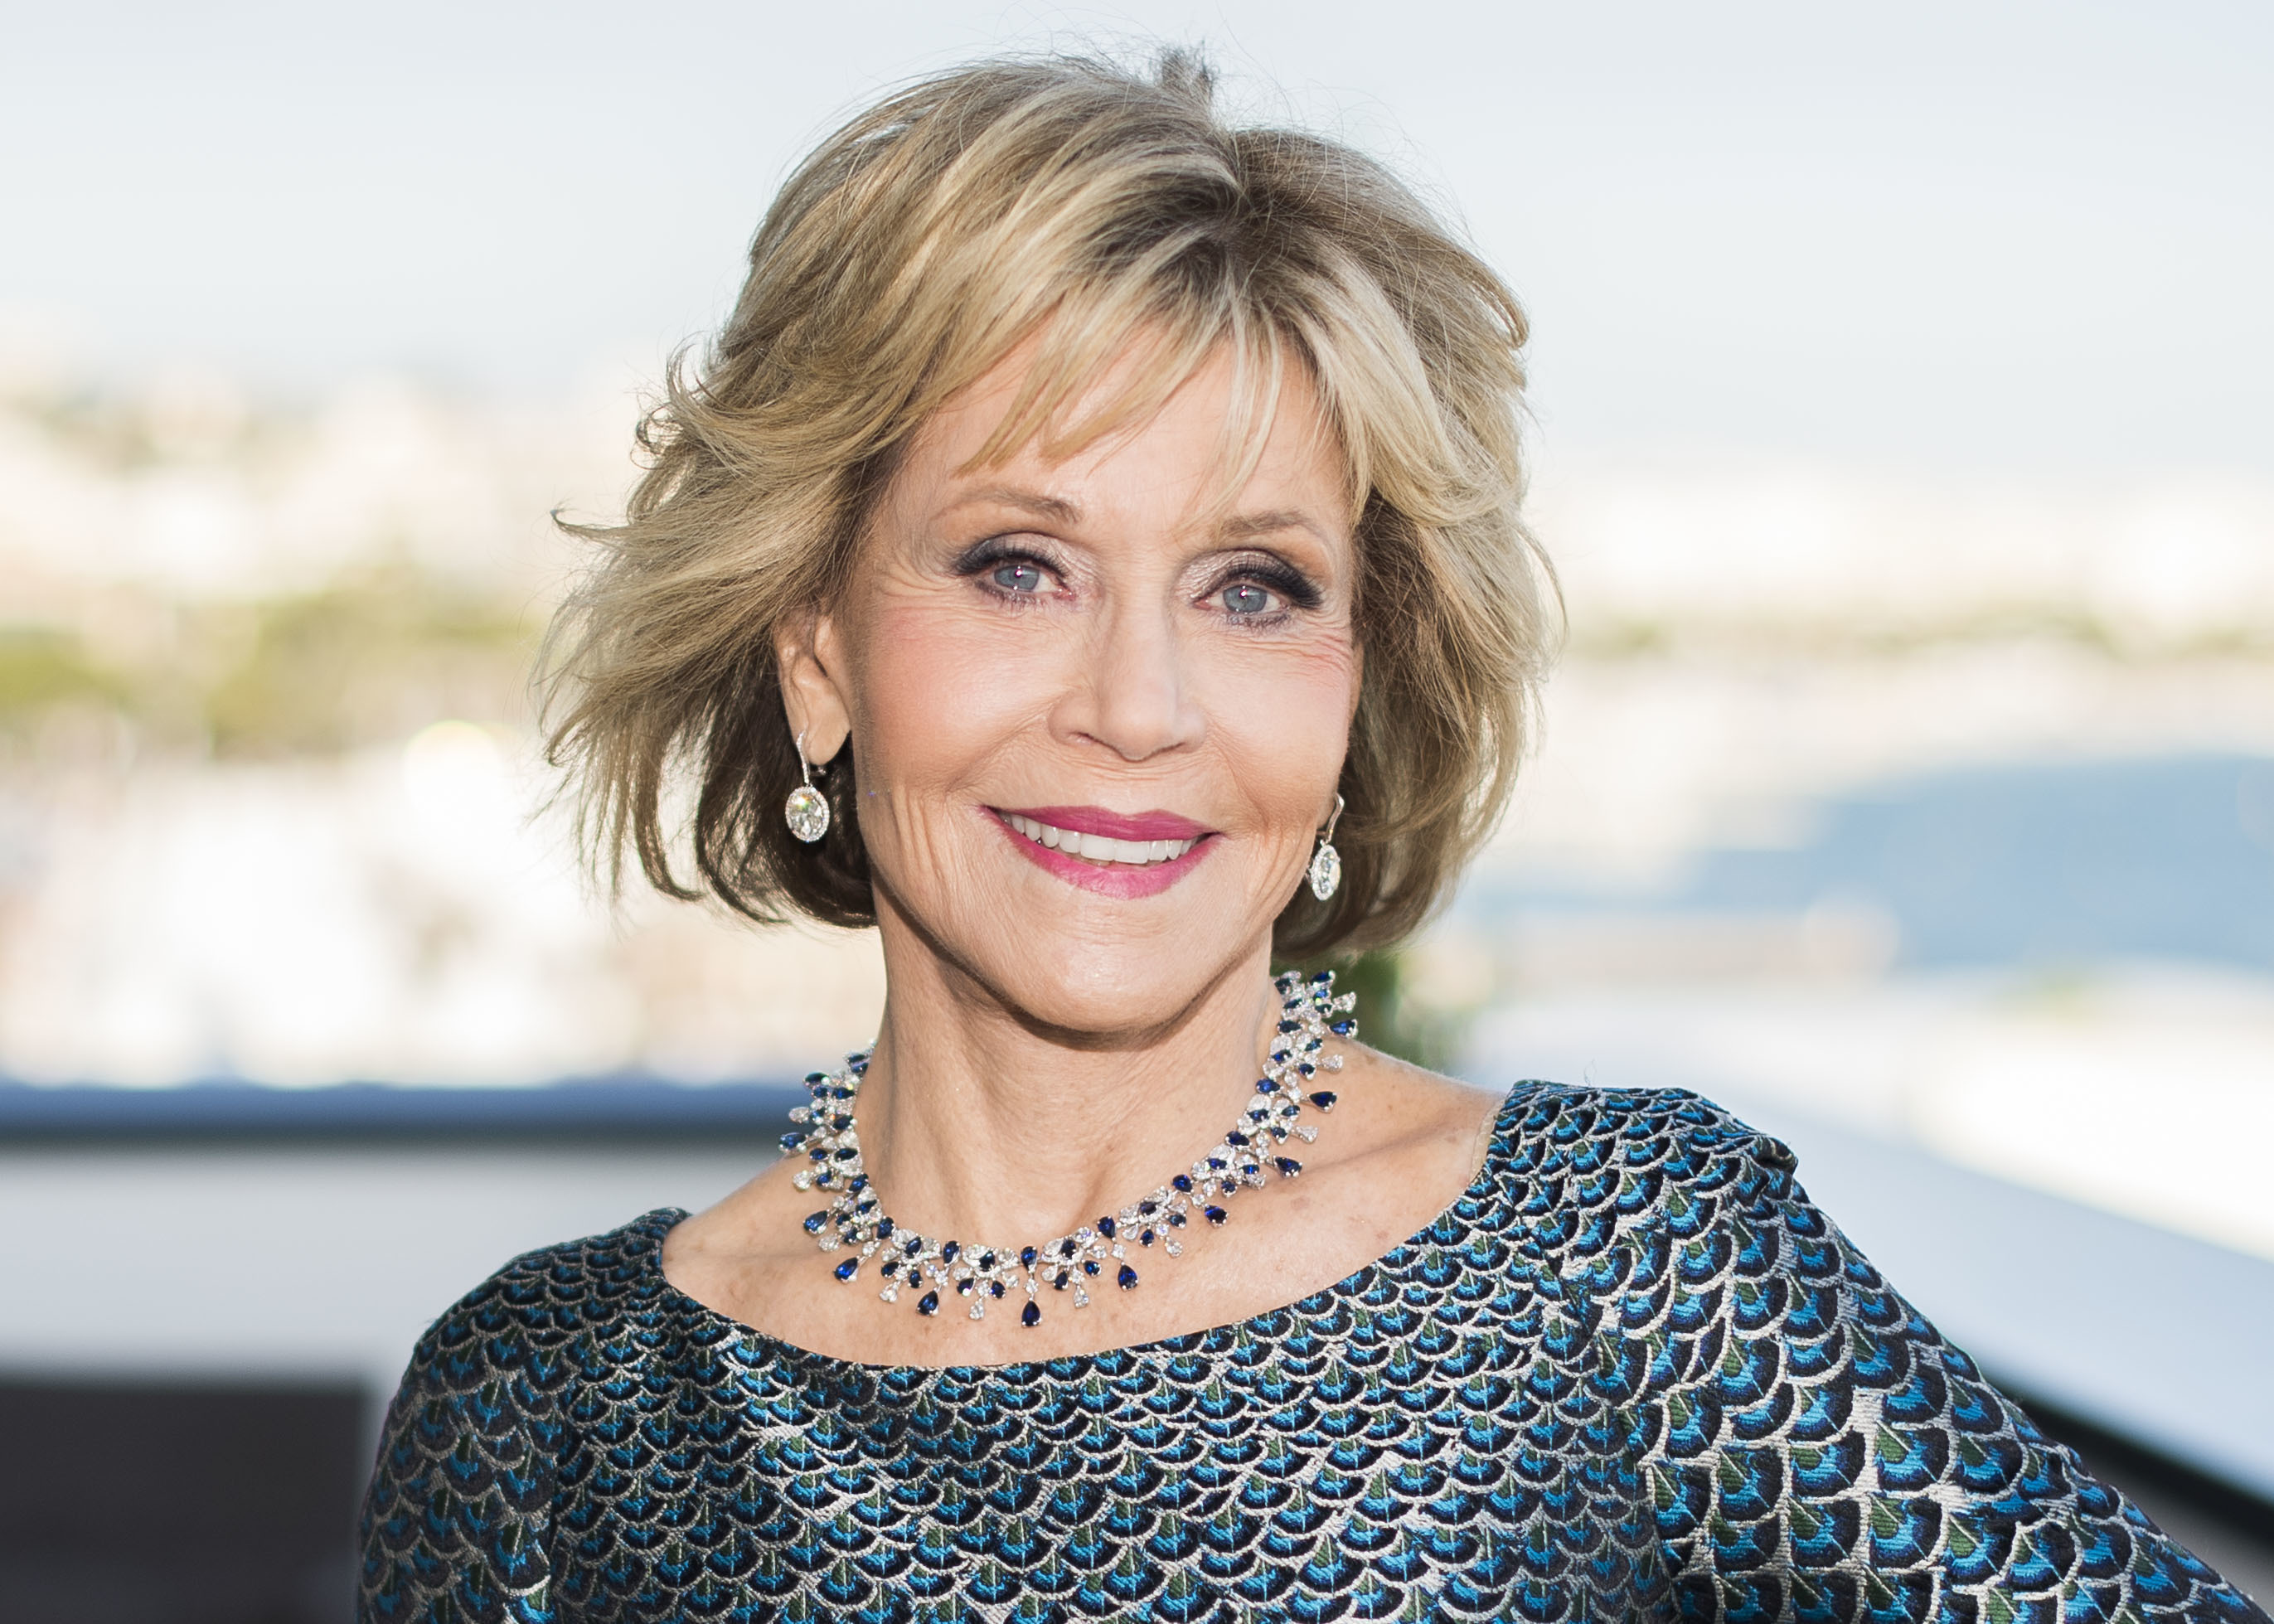 FILE - Actress Jane Fonda appears at the 71st international film festival in Cannes, southern France, on May 12, 2018. The Golden Globes will bestow the Cecil B. DeMille Award to Fonda during the 78th annual awards show next month. Photo: AP